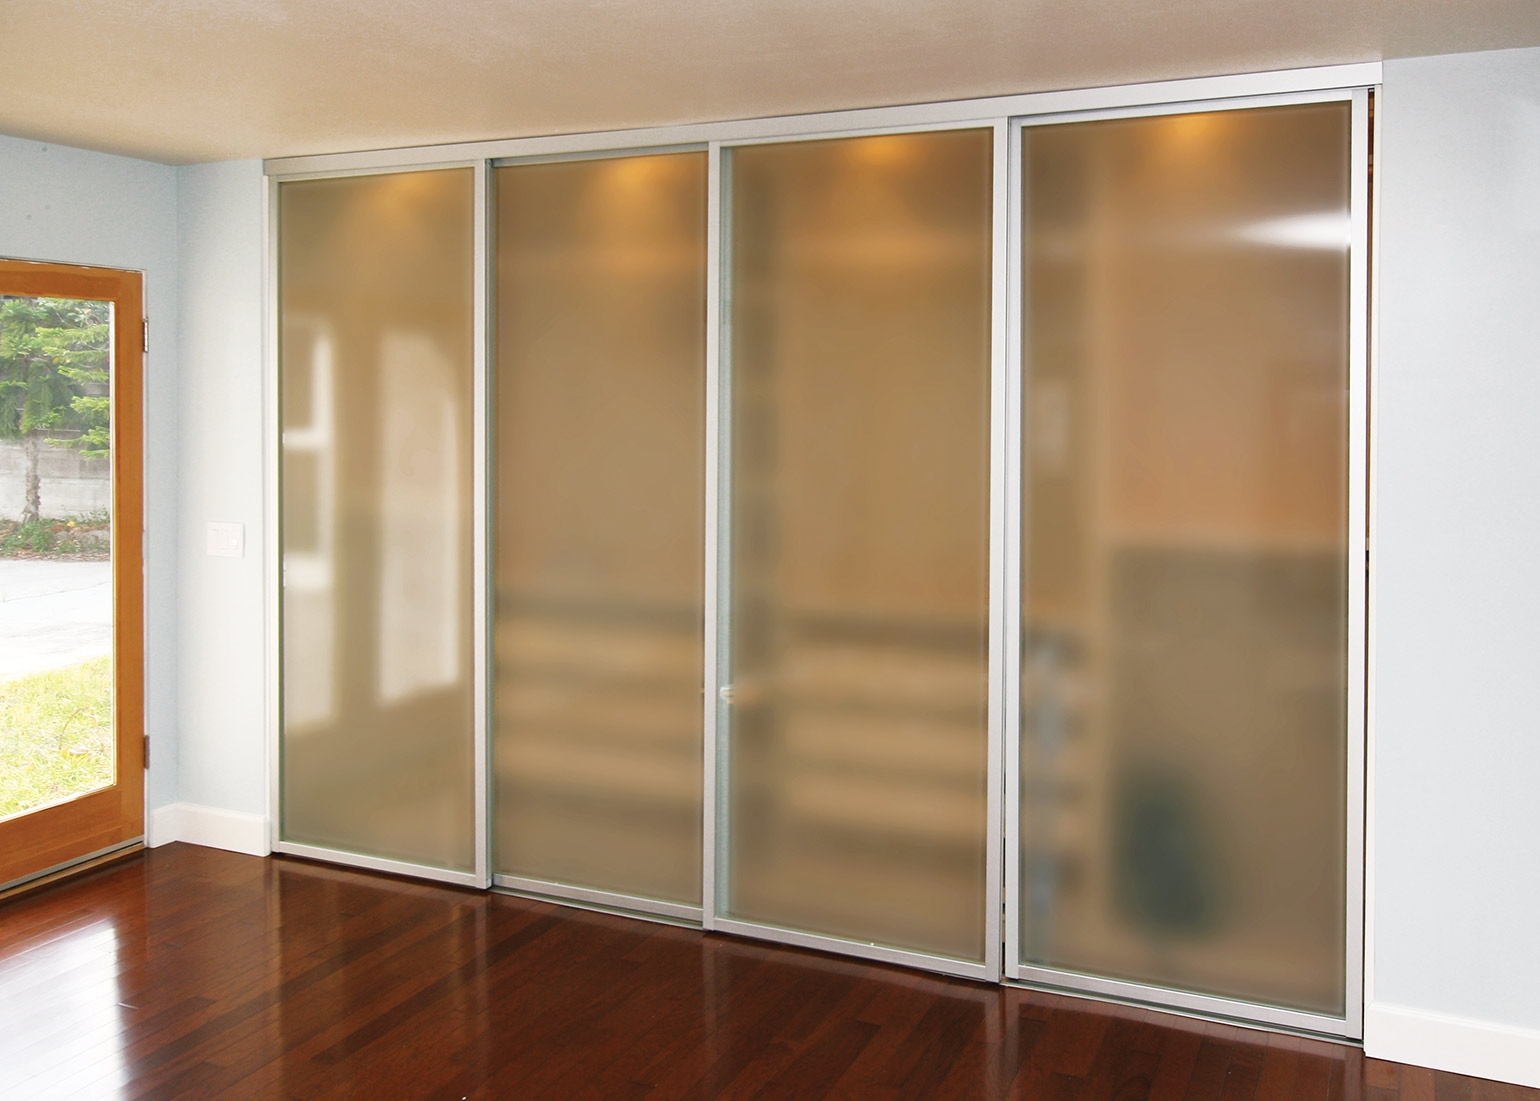 Permalink to Sliding Closet Doors Opaque Glass